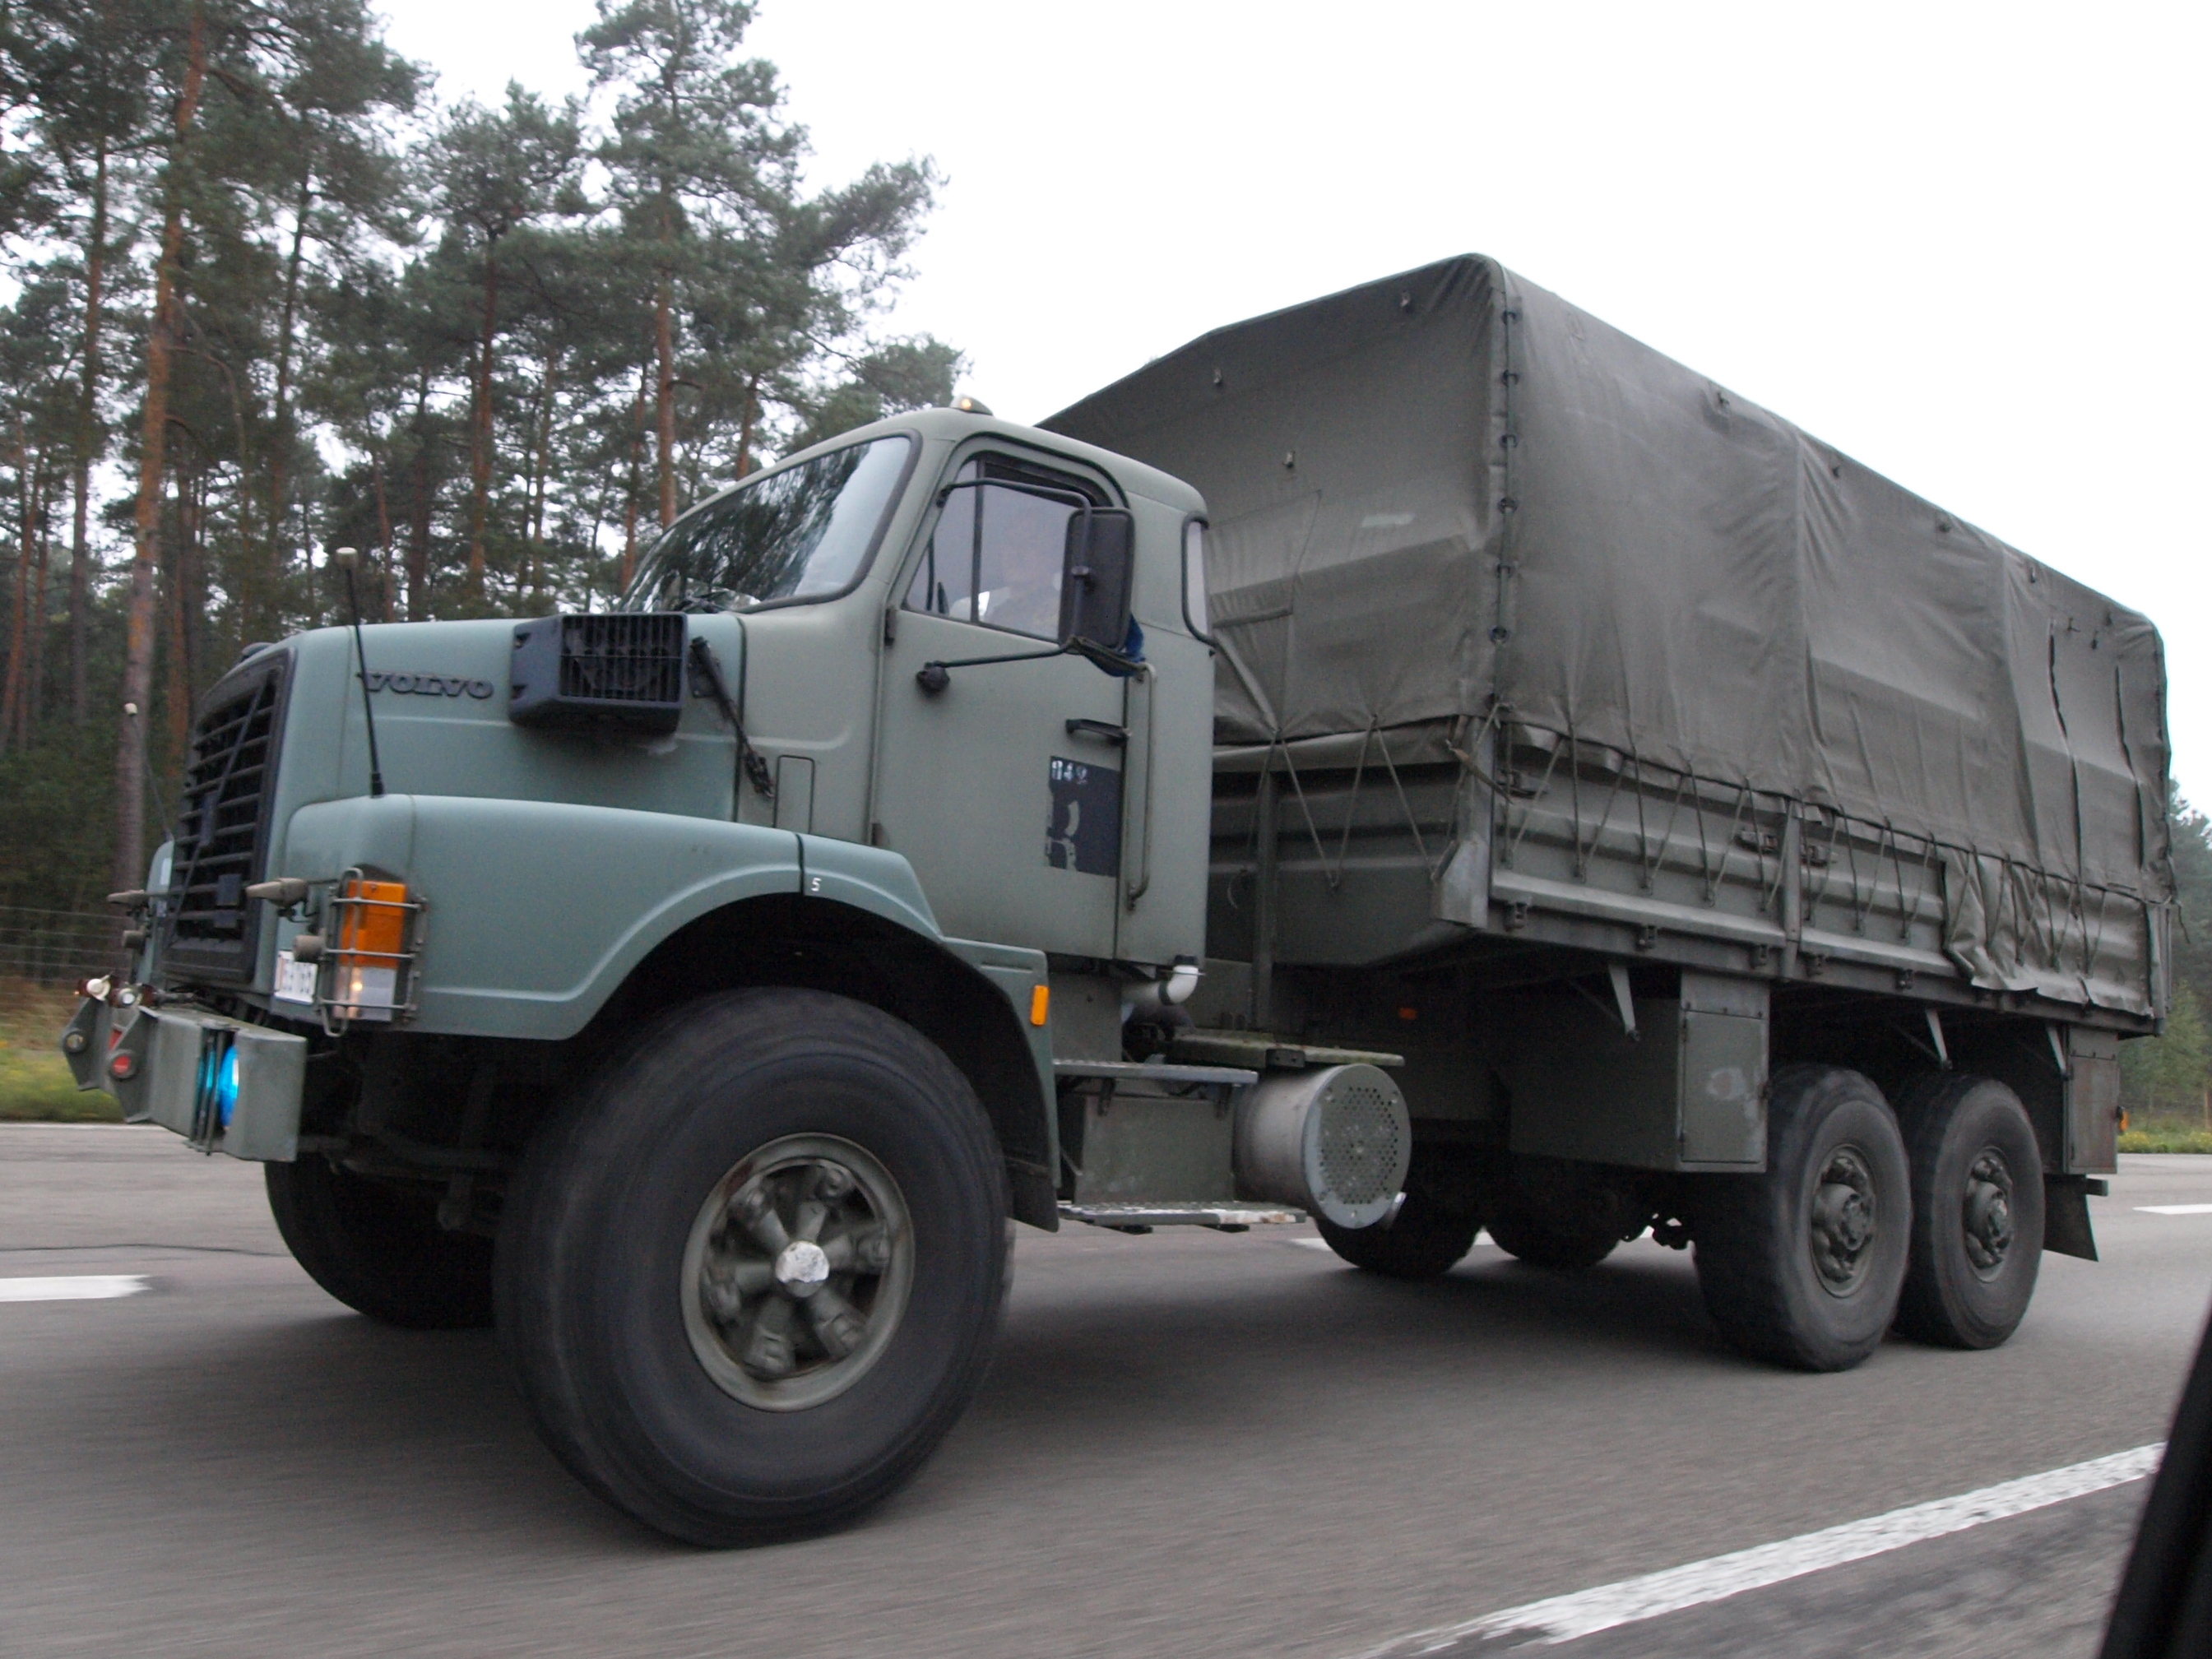 Armored Vehicles For Sale >> Volvo Military Vehicles | 2018 Volvo Reviews